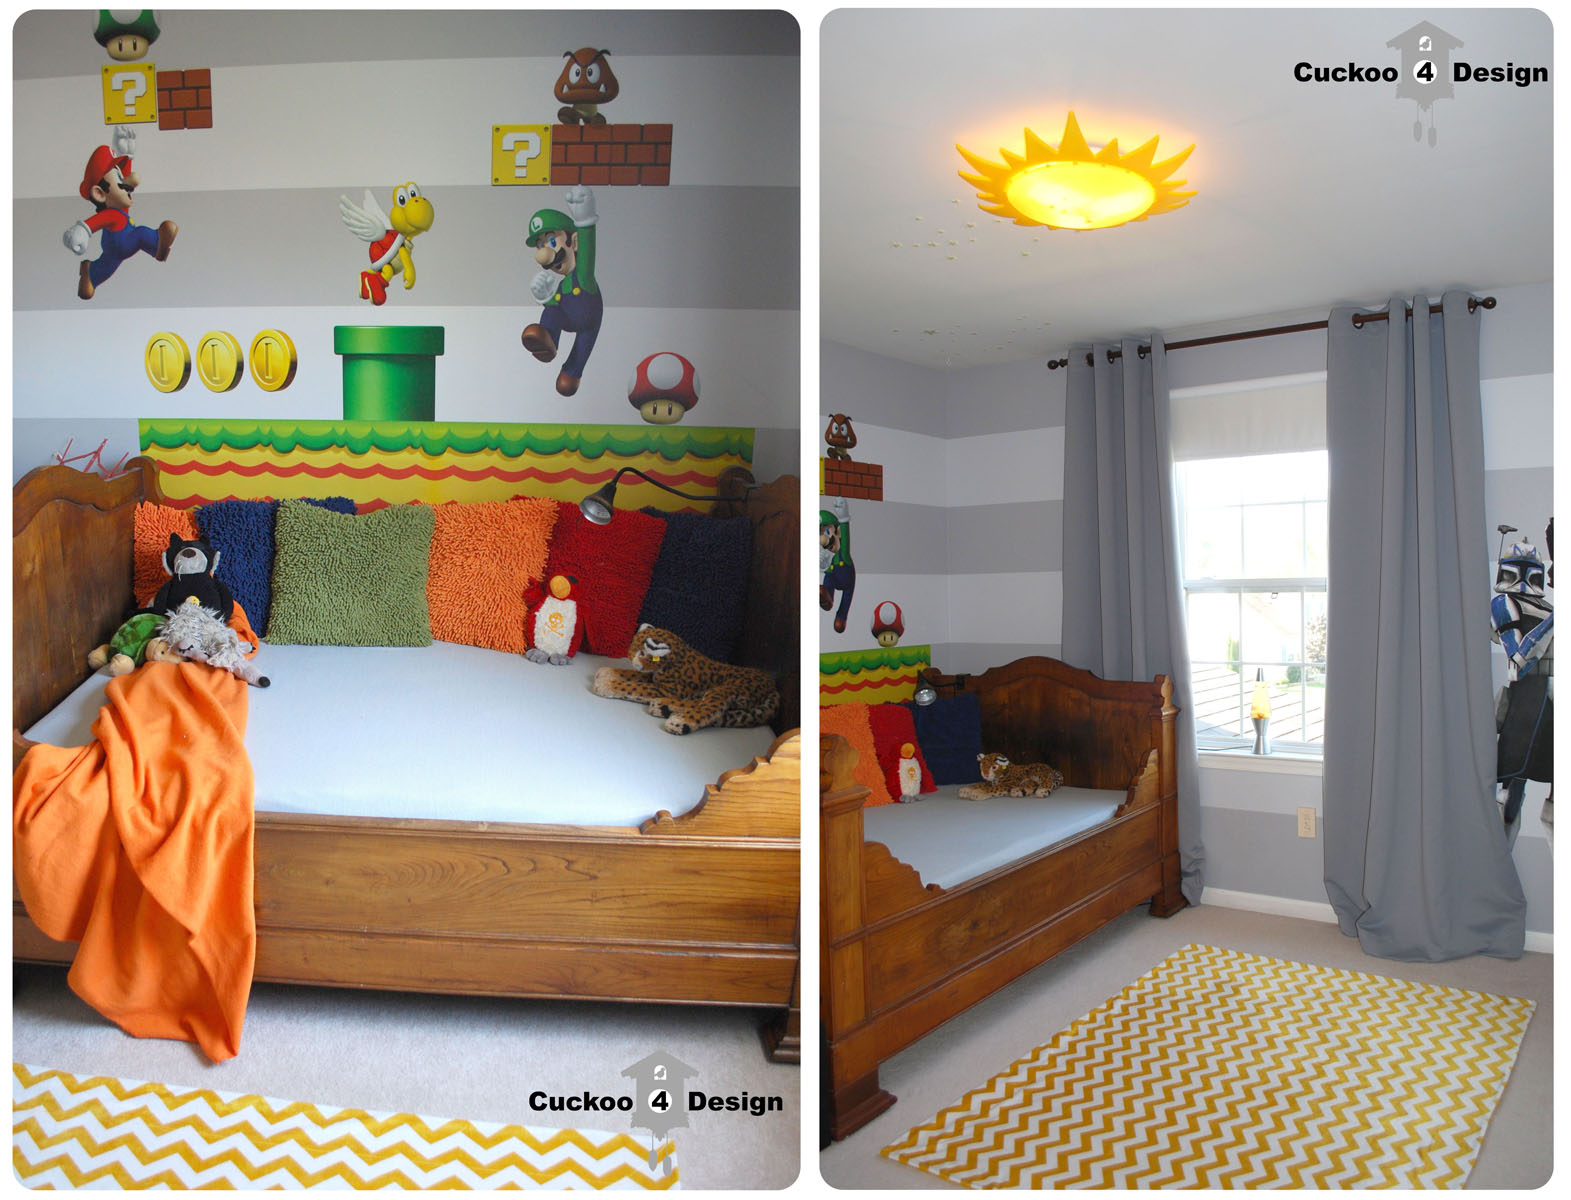 Mario brothers room idea cuckoo4design for 4 yr old bedroom ideas